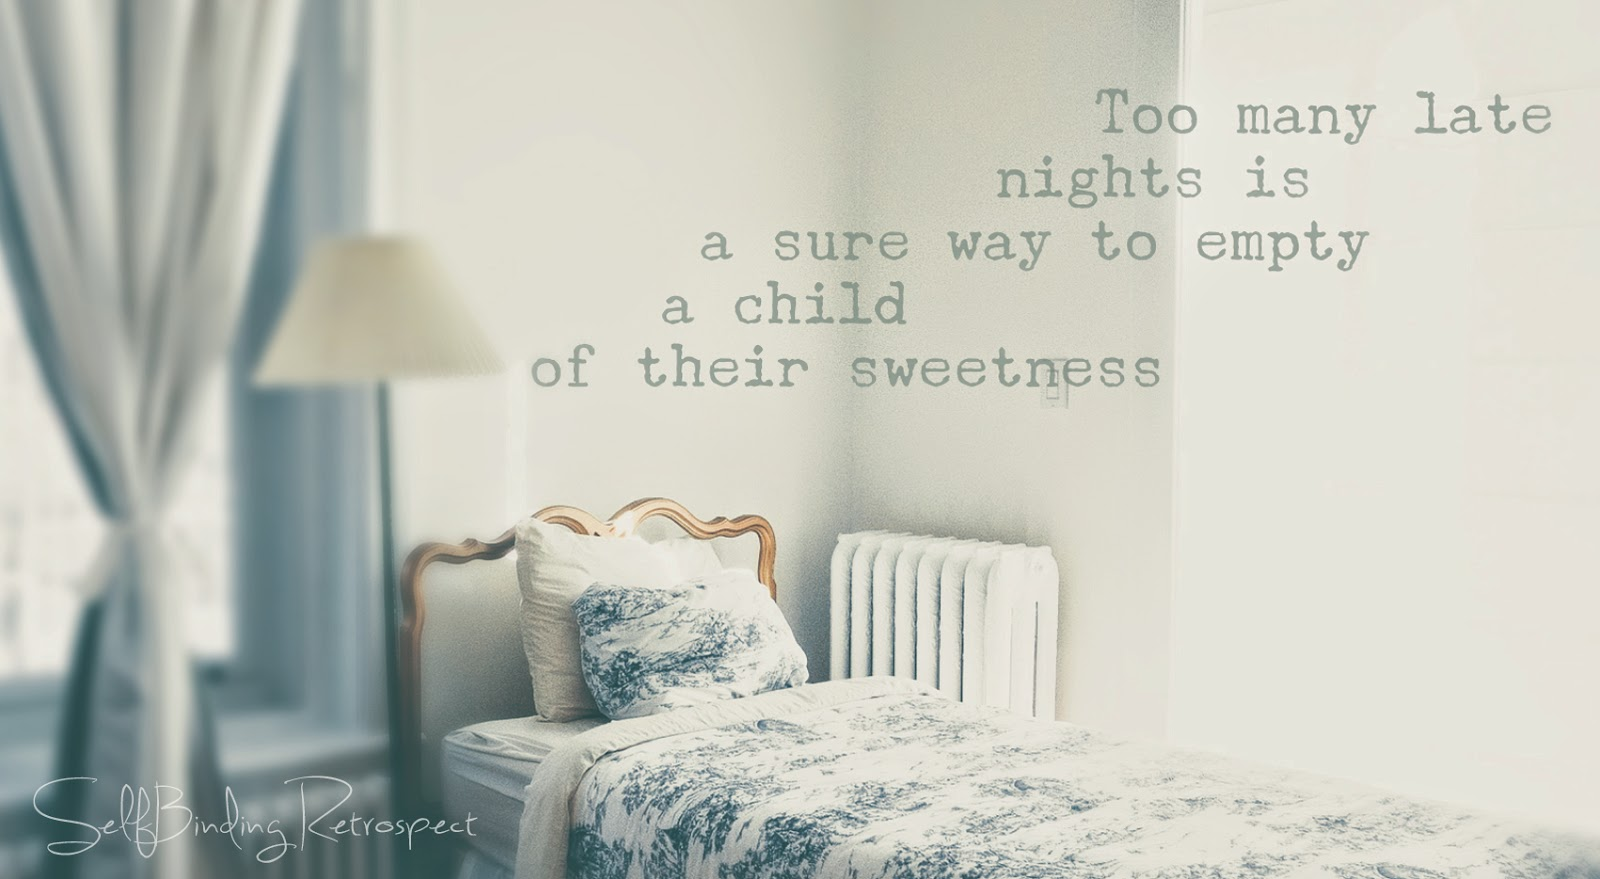 Too many late nights is a sure way to empty a child of their sweetness